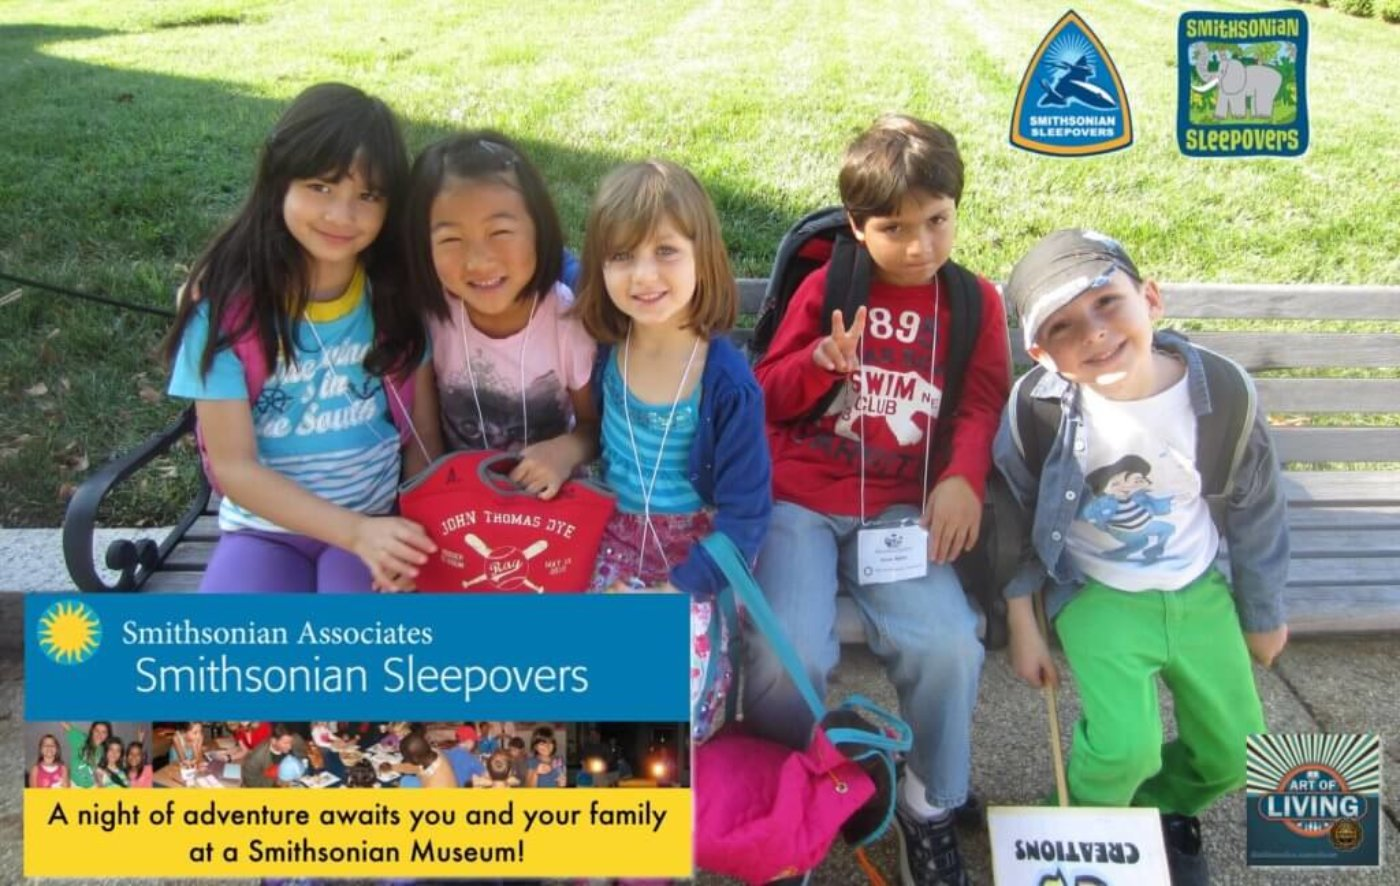 Smithsonian Sleepovers : Spend a night at the National Museum of American History, Air & Space, and Natural History!